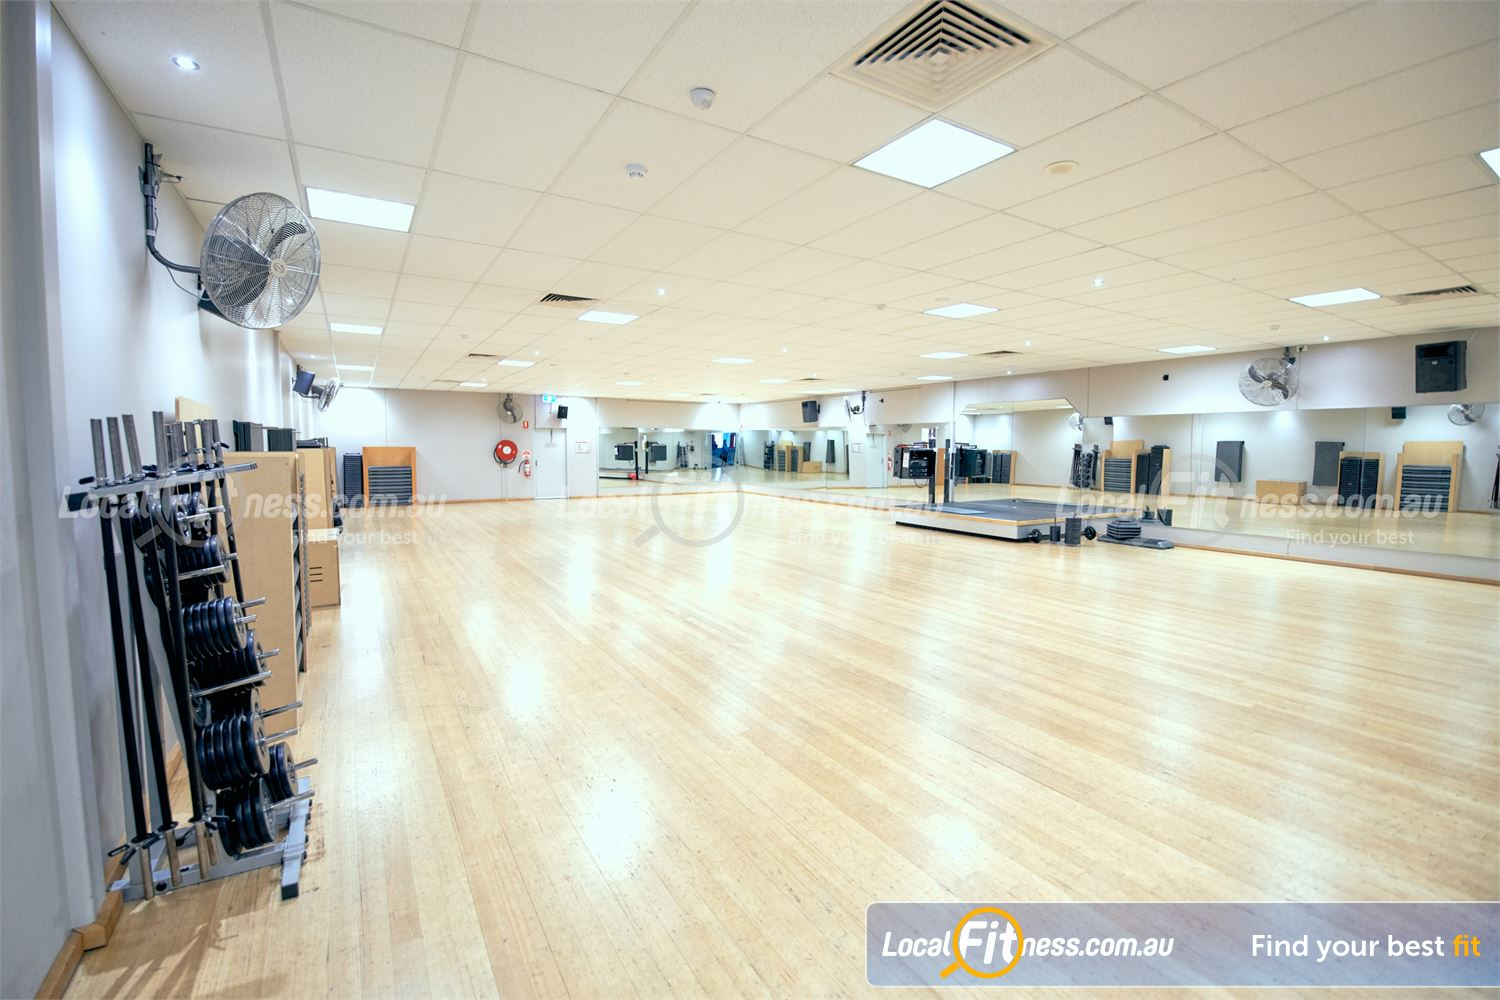 Fitness First Malvern Valley Near Murrumbeena Over 45 classes per week including Malvern Valley Yoga and Pilates.